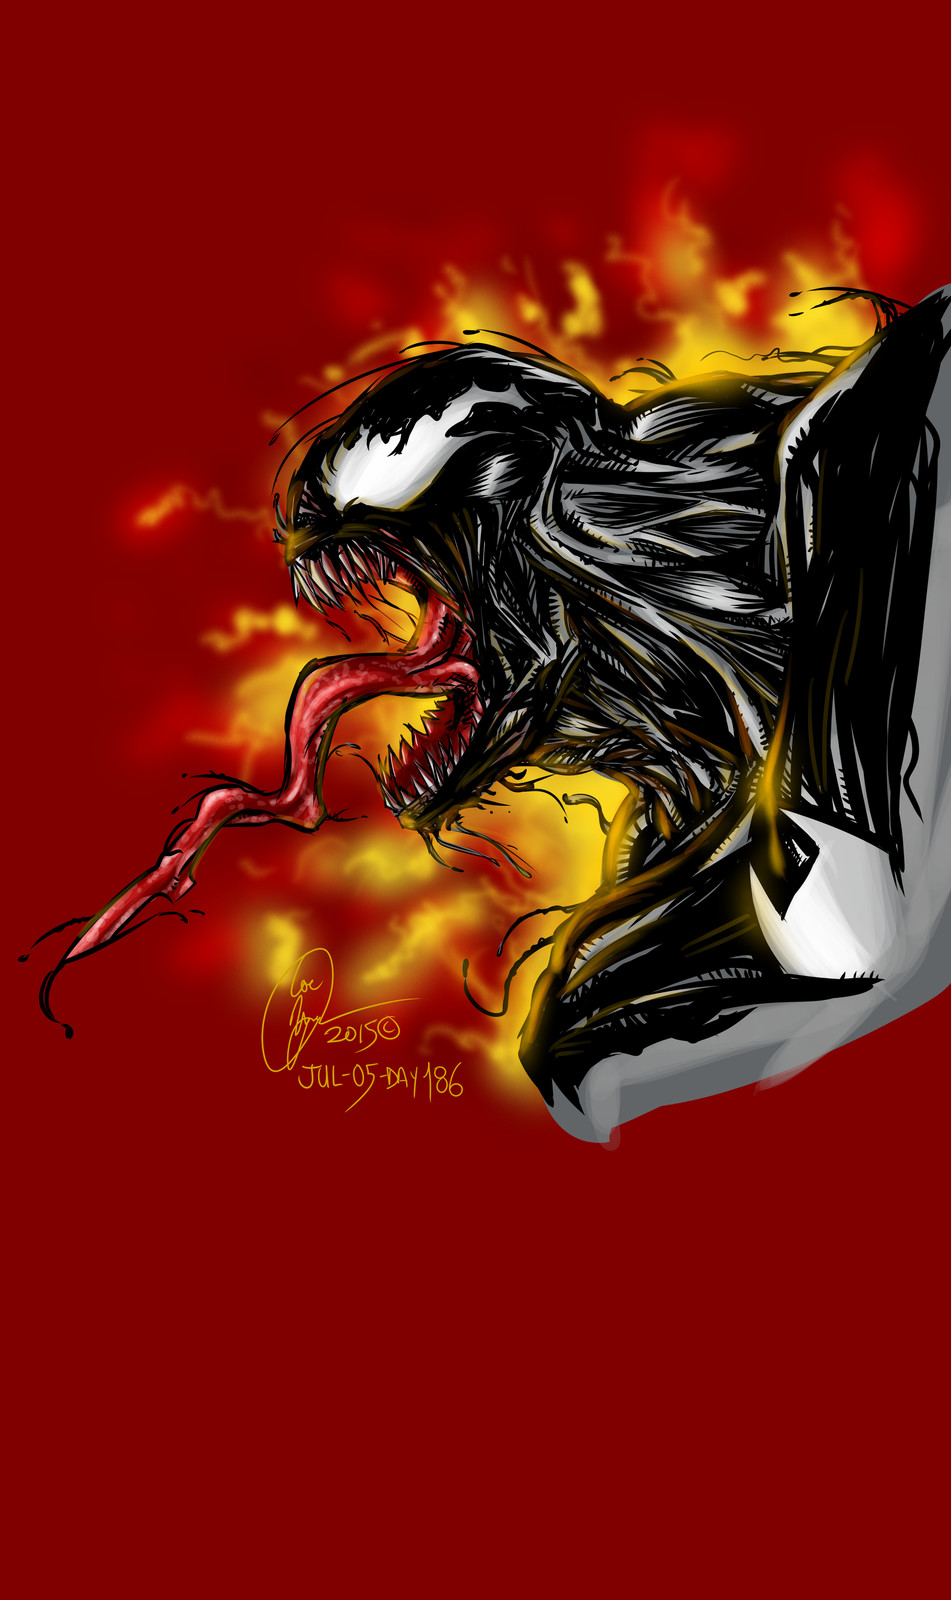 Venom on Fire :)